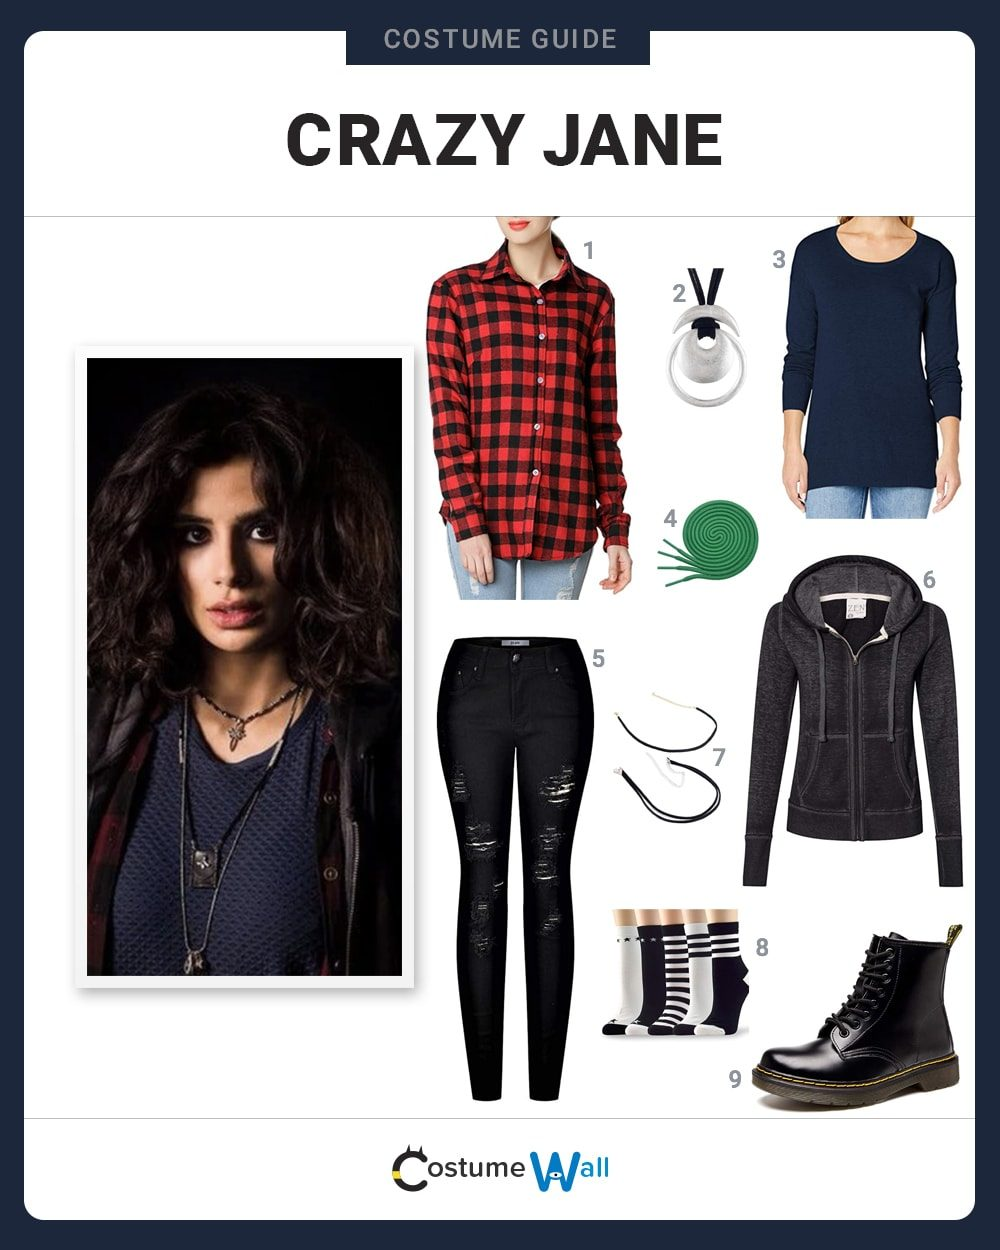 Crazy Jane Costume Guide